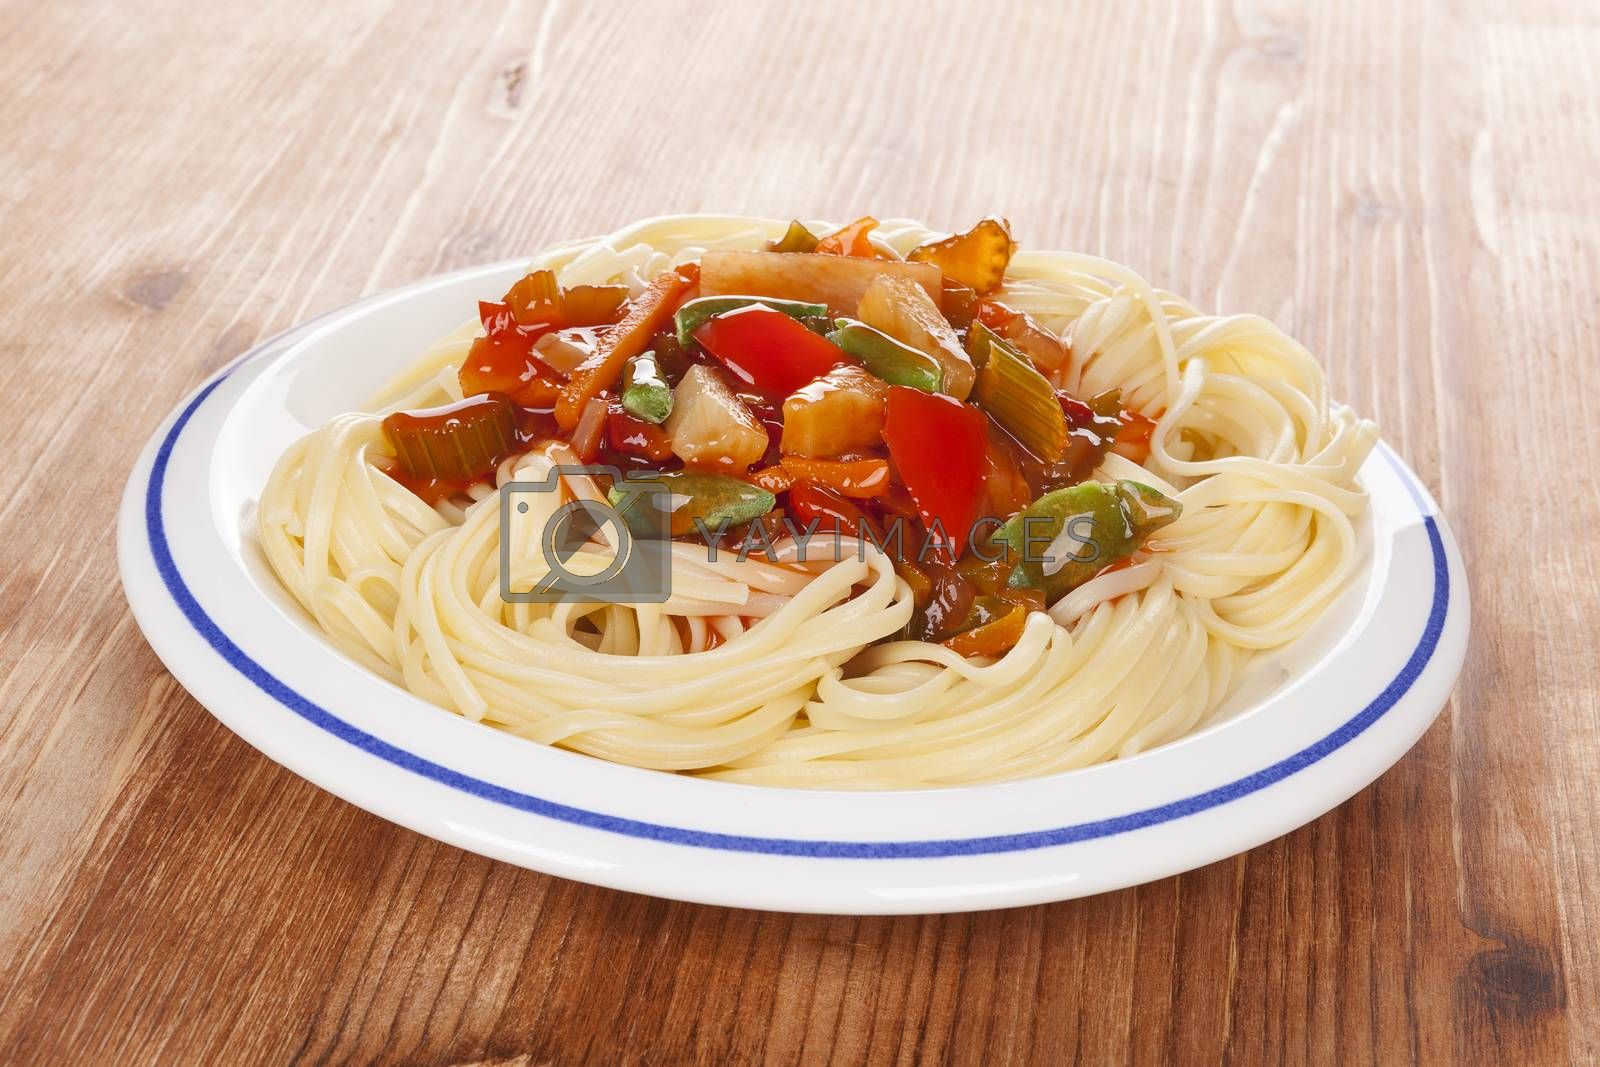 Delicious thai vegetarian pasta on white plate on wooden background. Healthy vegetarian eating.